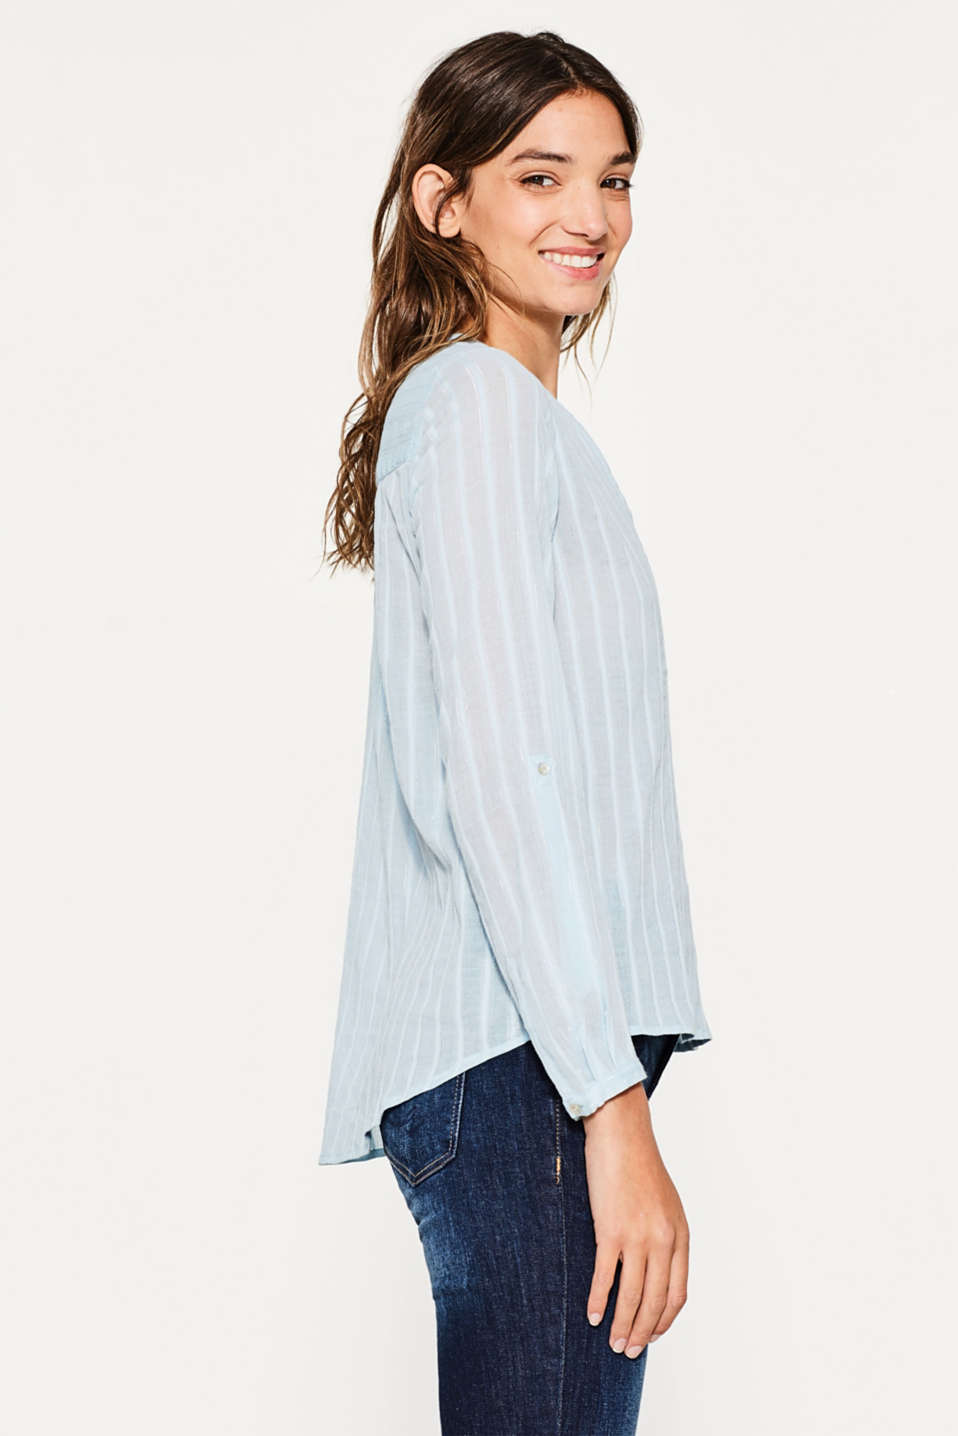 Esprit - Cotton blouse with glittery stripes